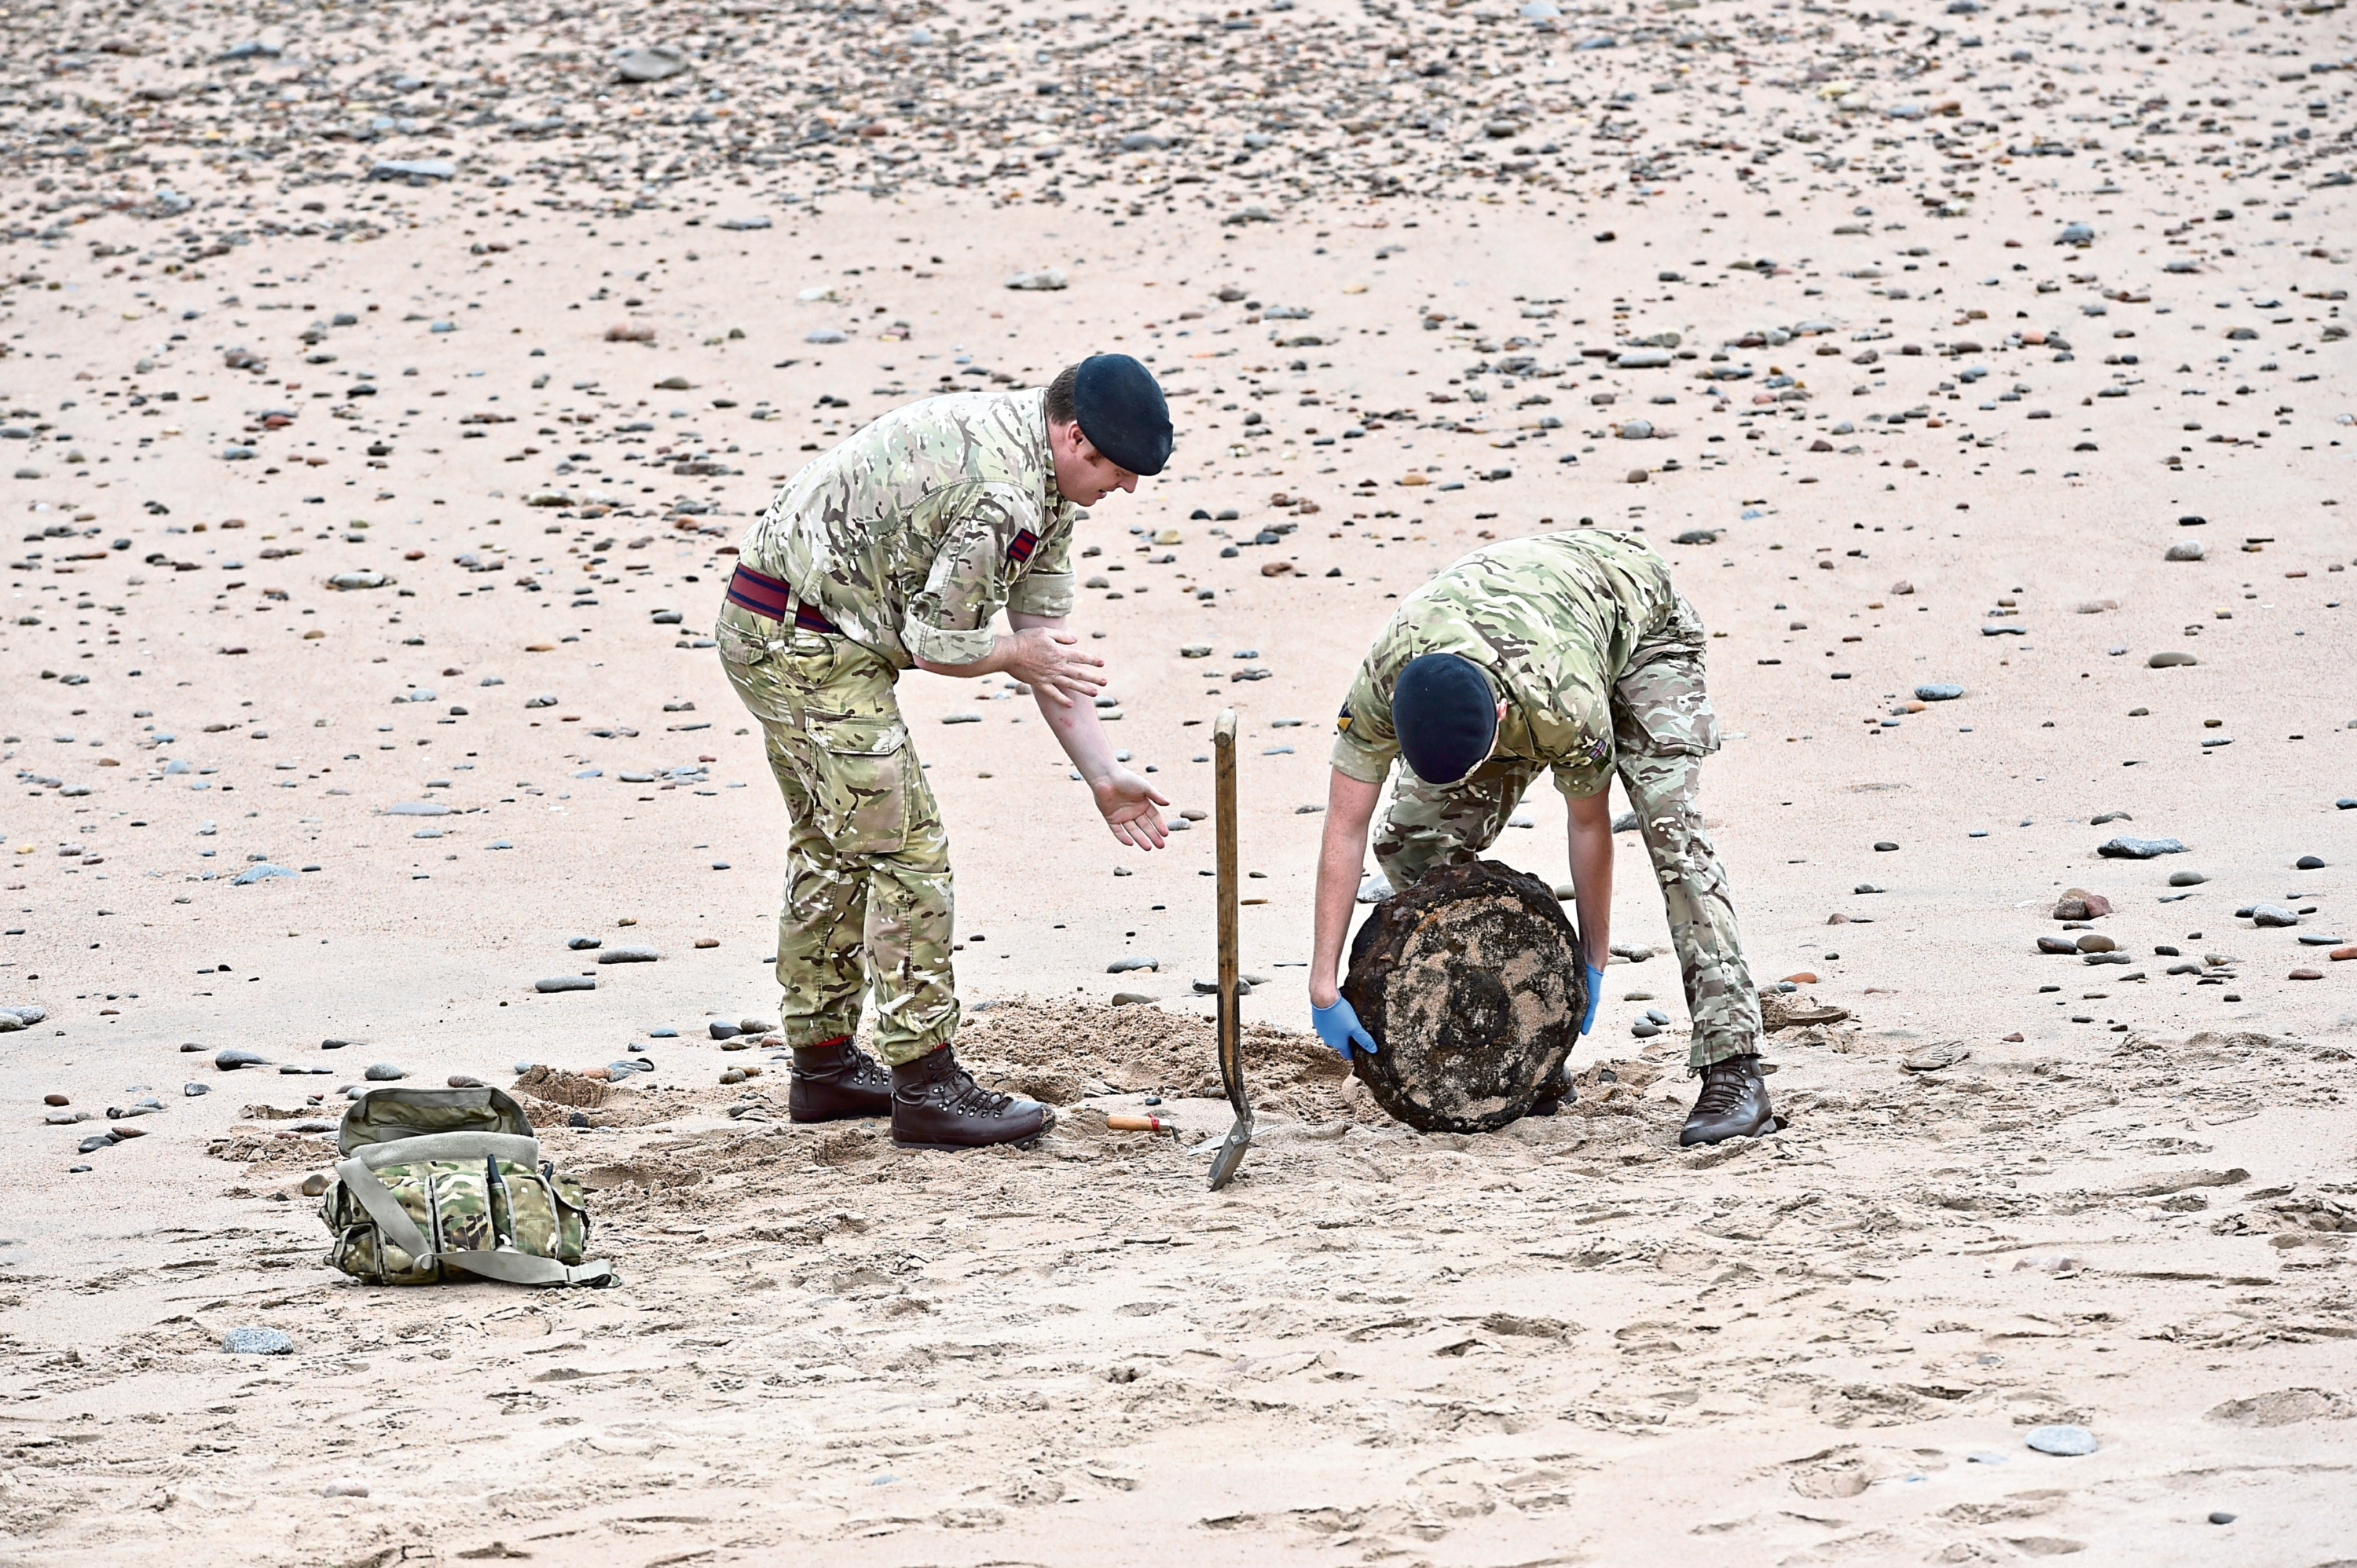 A bomb disposal crew at work on Aberdeen beach